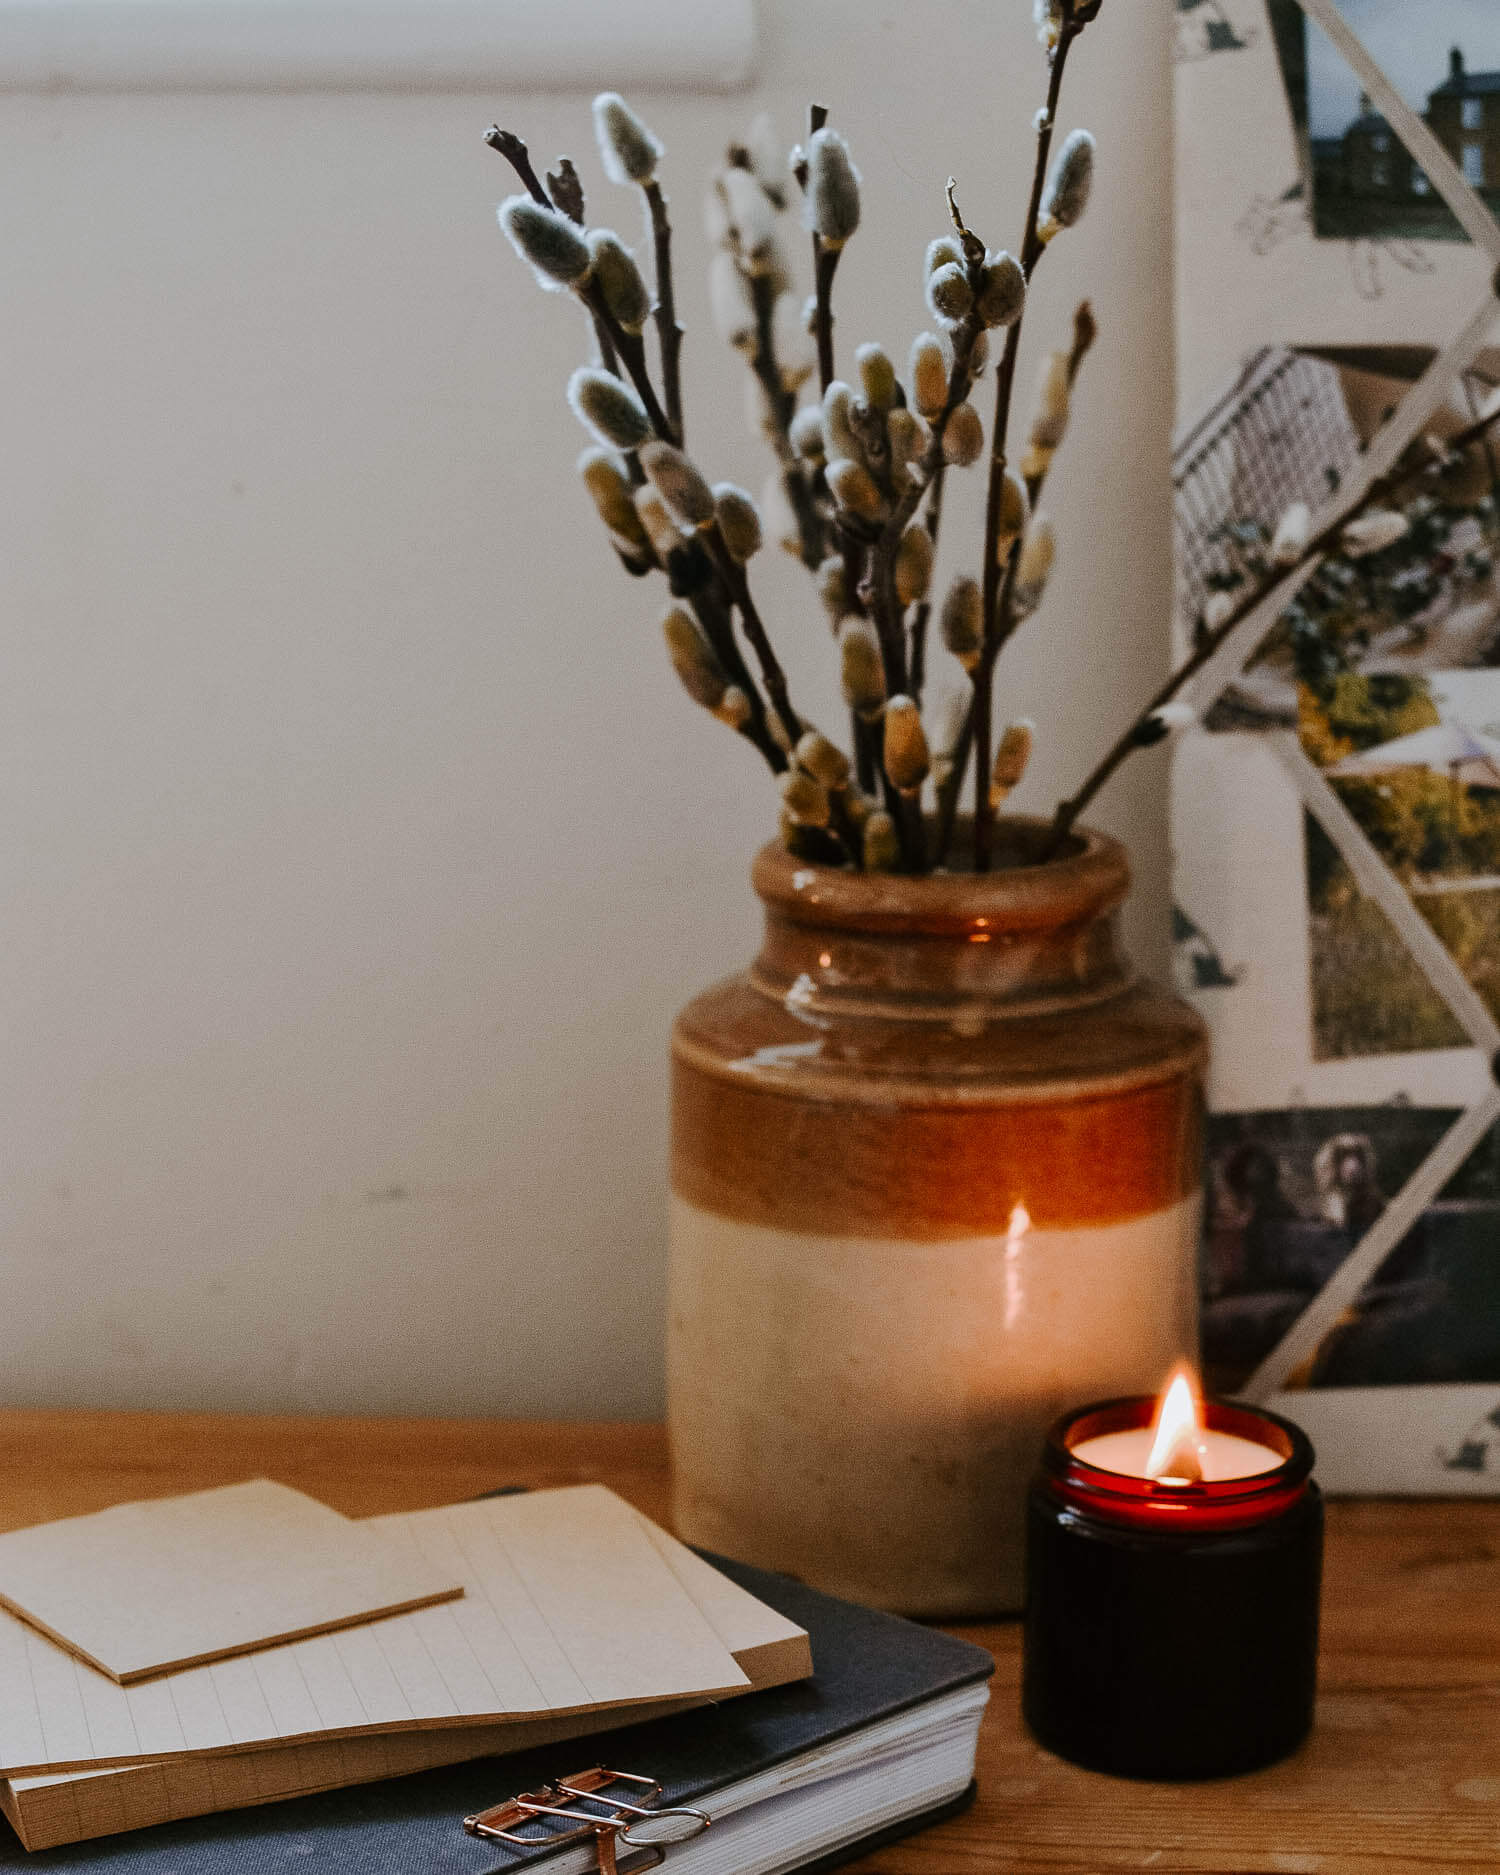 Spring willow blossom and a lit candle on a wooden desk